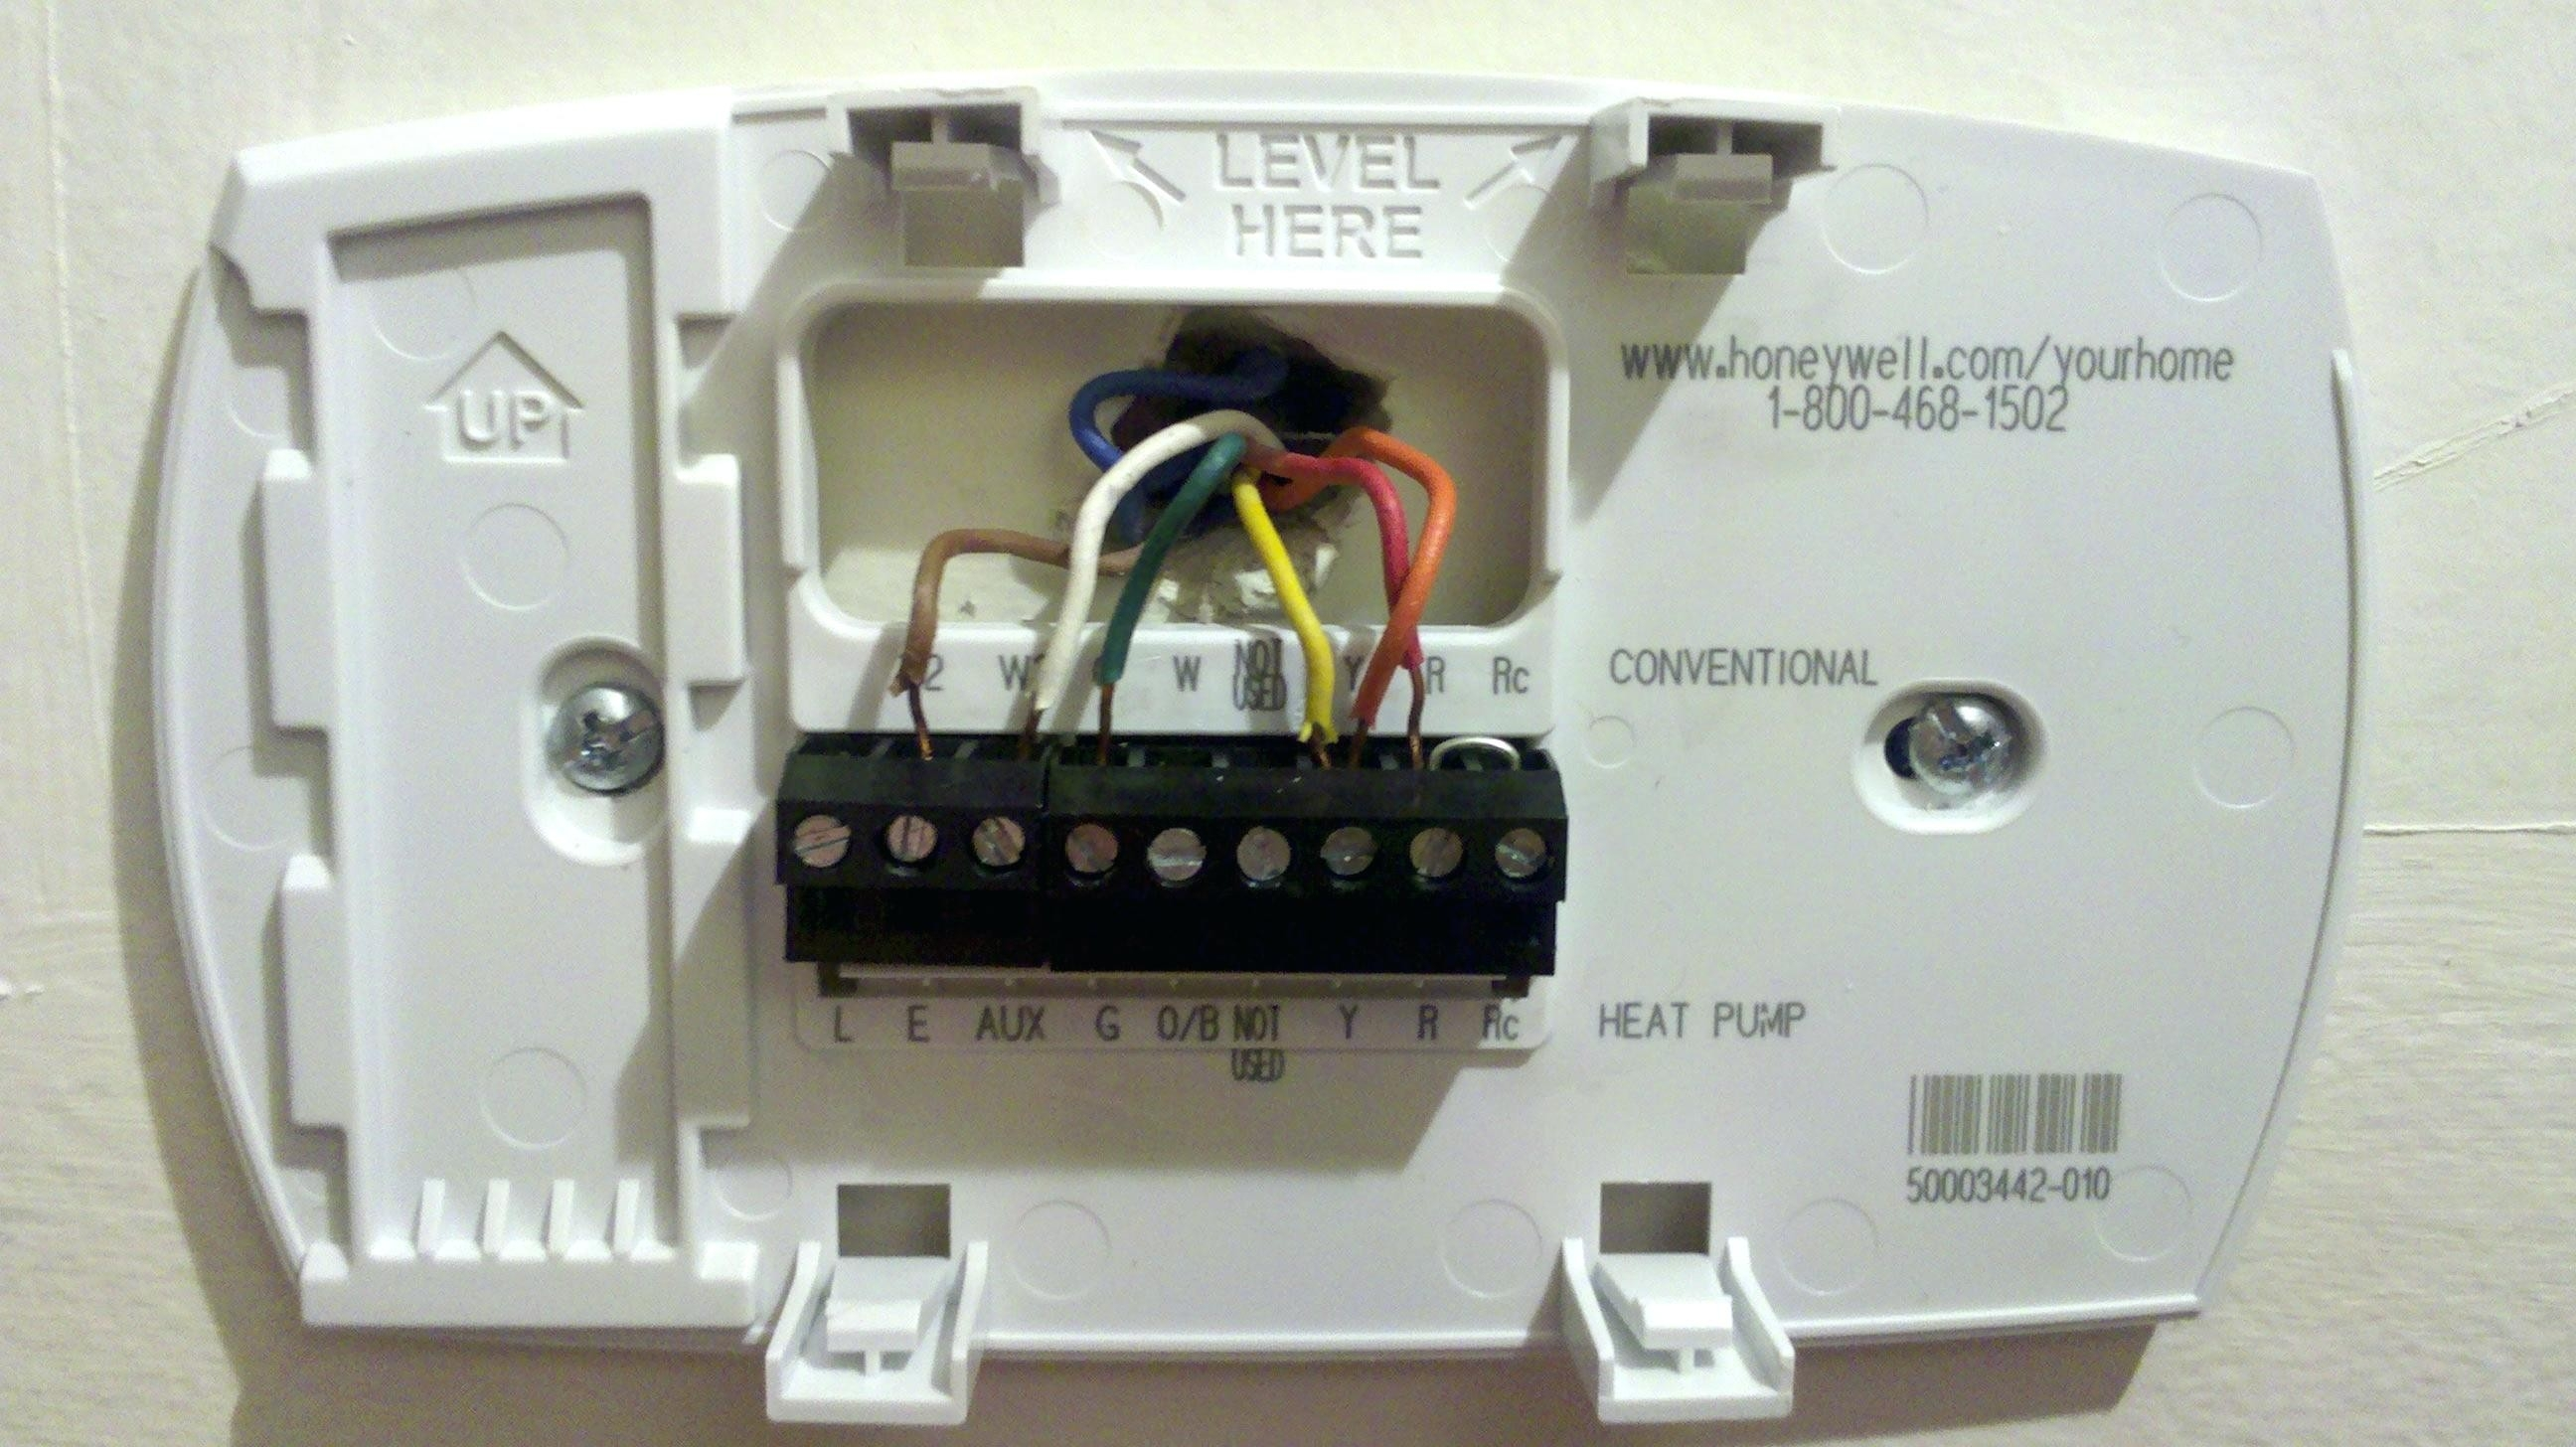 ow_5294] heat pump thermostat wiring diagrams rthl3550 free diagram  xempag ginia pead capem mohammedshrine librar wiring 101